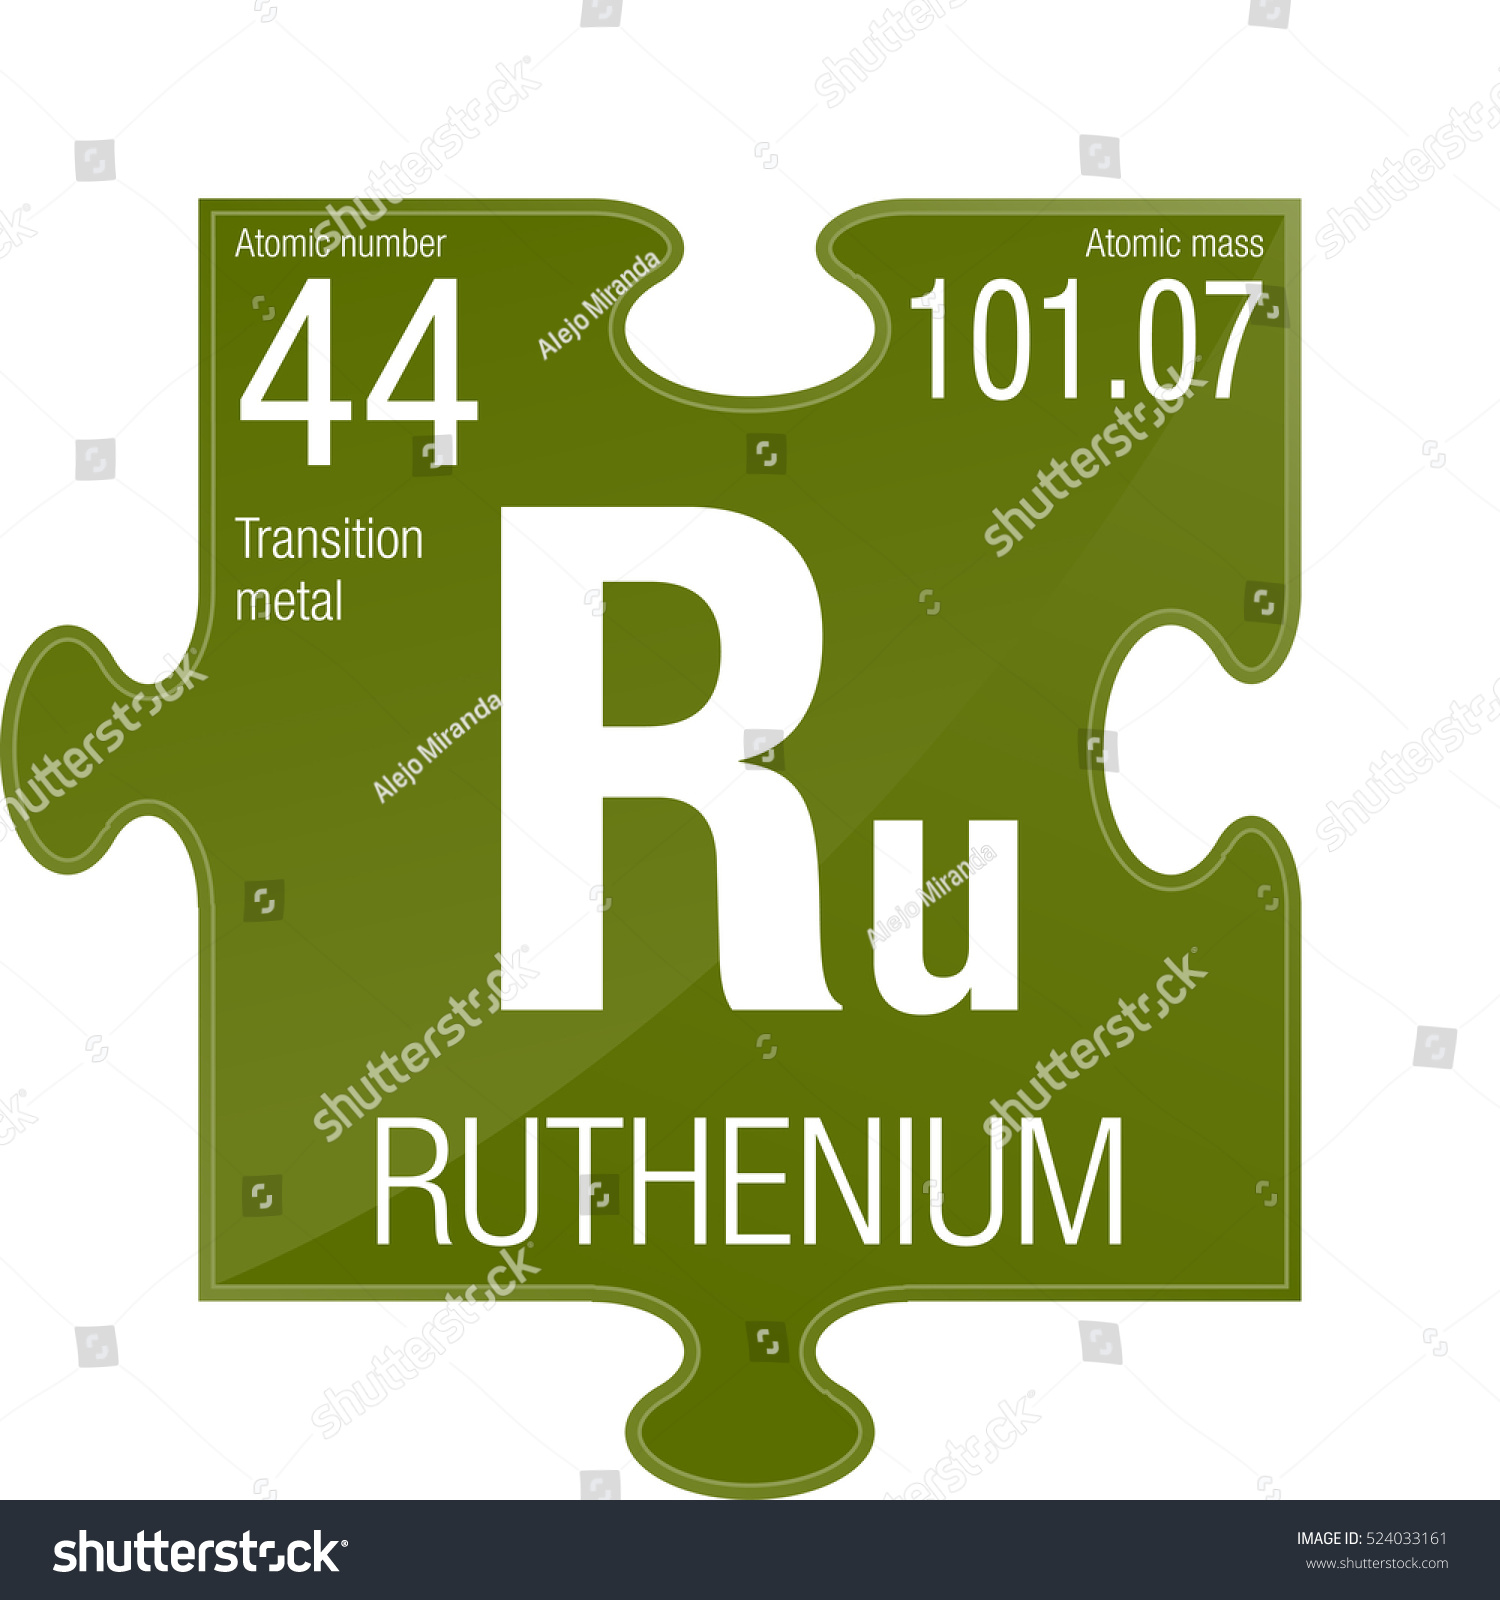 Ruthenium symbol element number 44 periodic stock vector 524033161 ruthenium symbol element number 44 of the periodic table of the elements chemistry gamestrikefo Choice Image